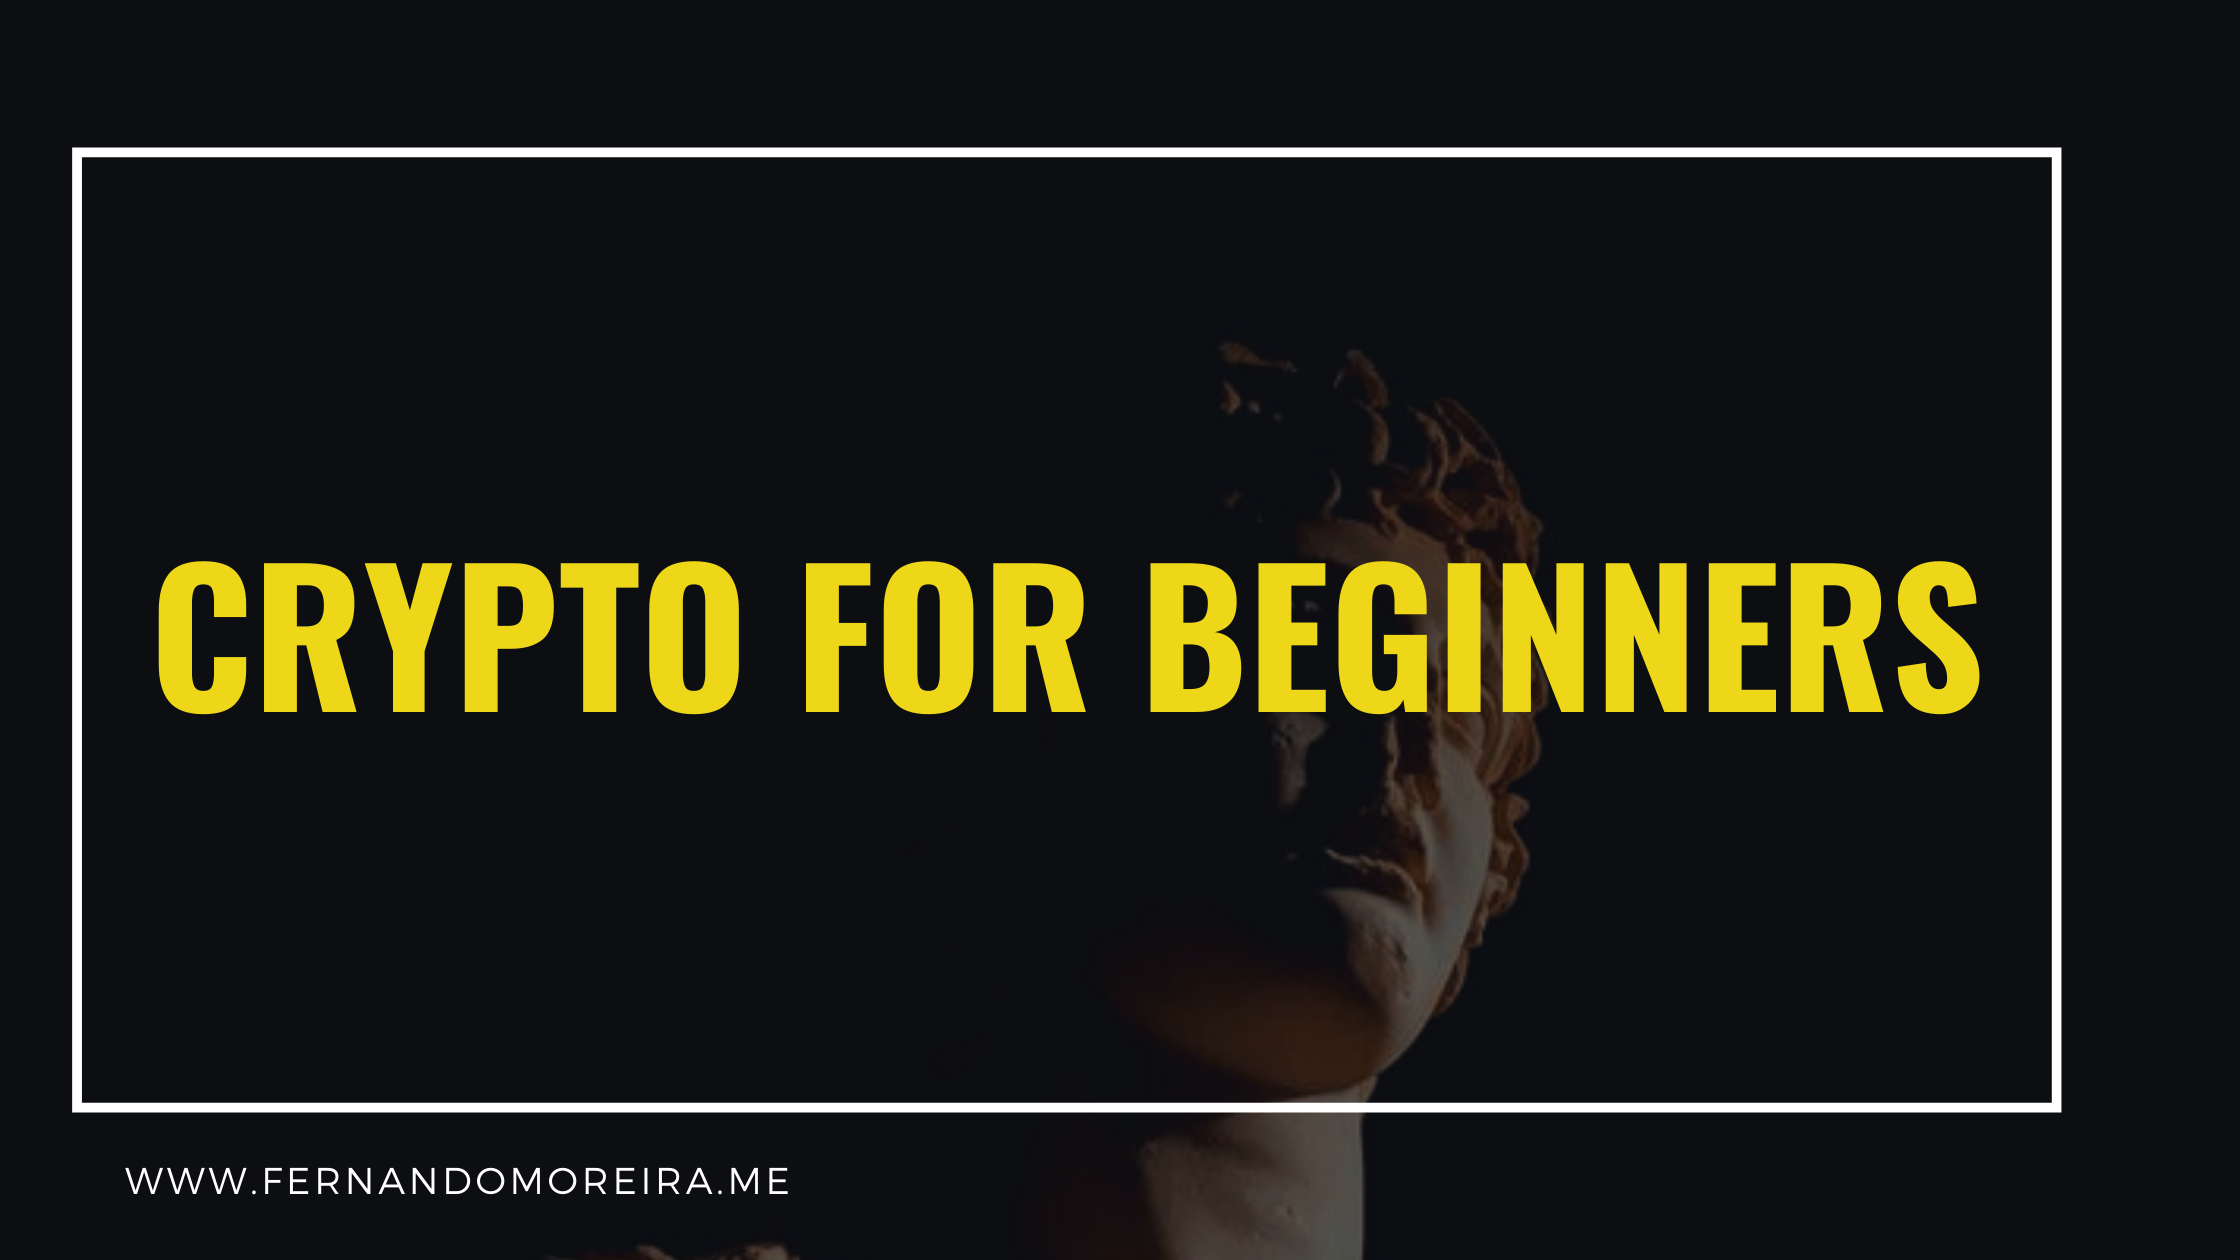 Cryptocurrencies are about to change the world as we know it. Just think of the example of Uniswap, which allows the exchange of cryptocurrencies. The